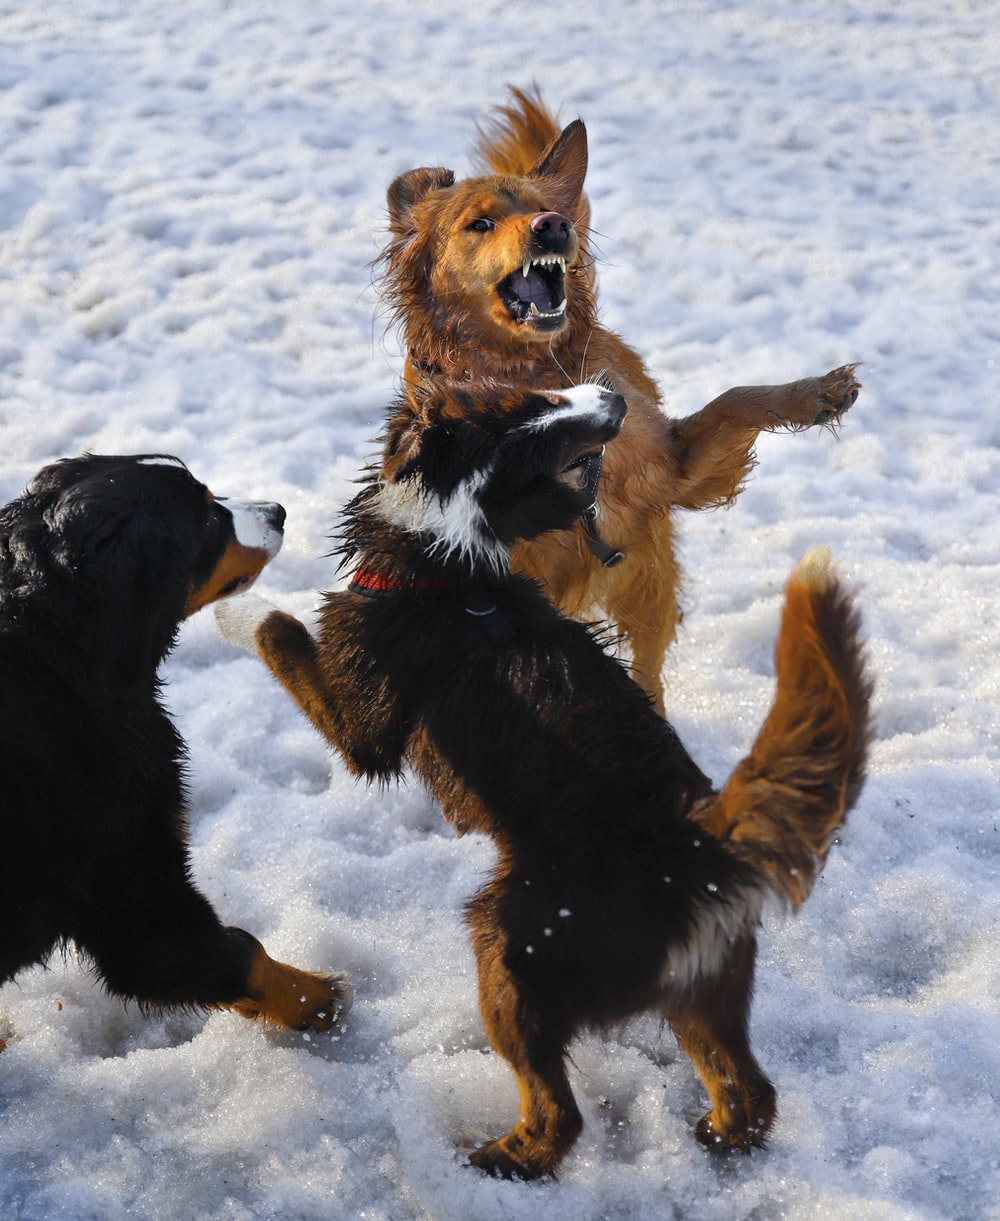 black and brown short coated dog running on snow covered ground during daytime